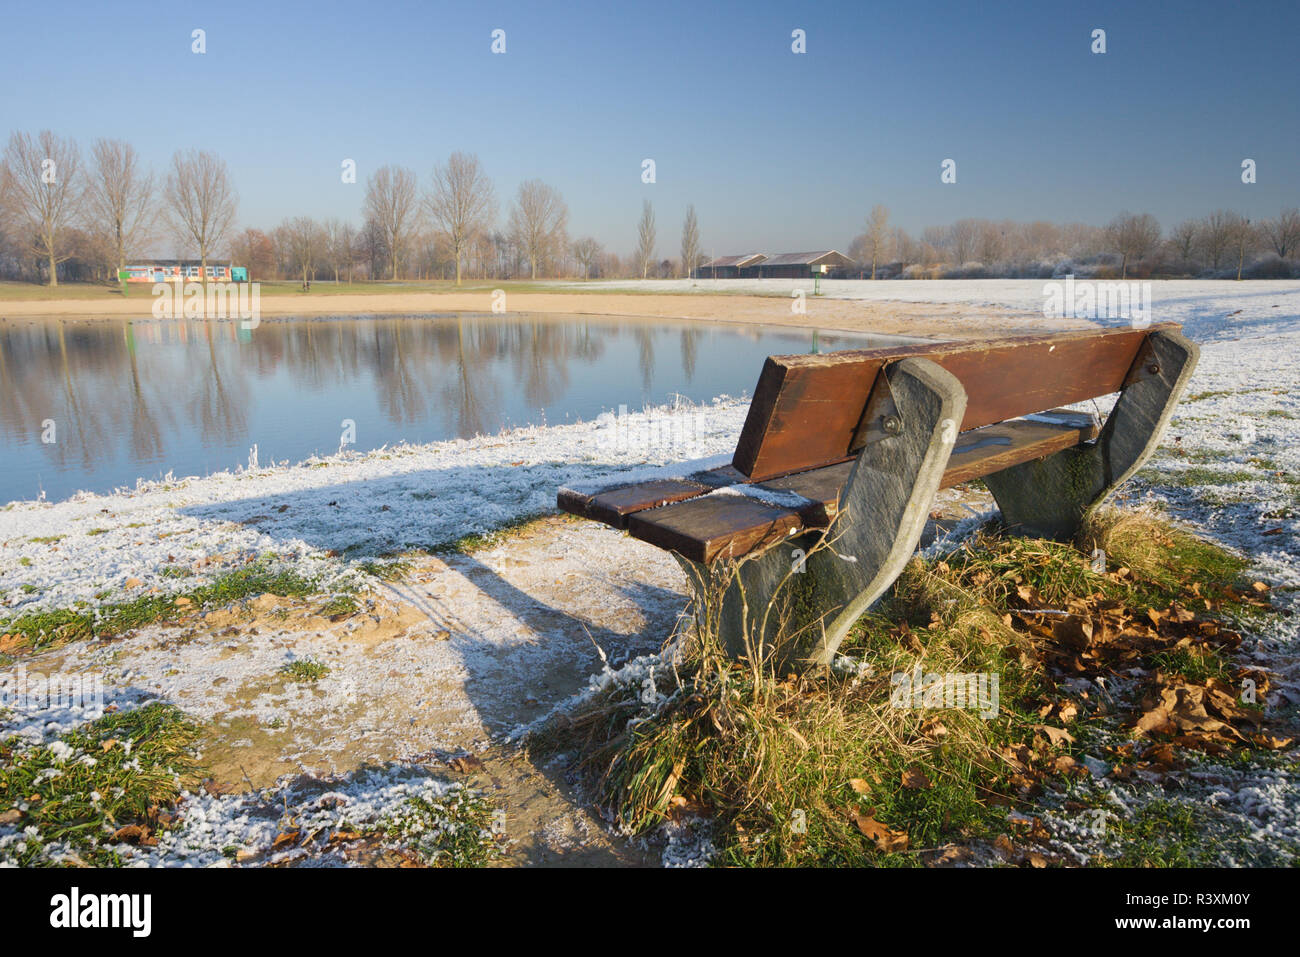 A summer swimming lake in wintertime. Auesee in Wesel, Germany - Stock Image